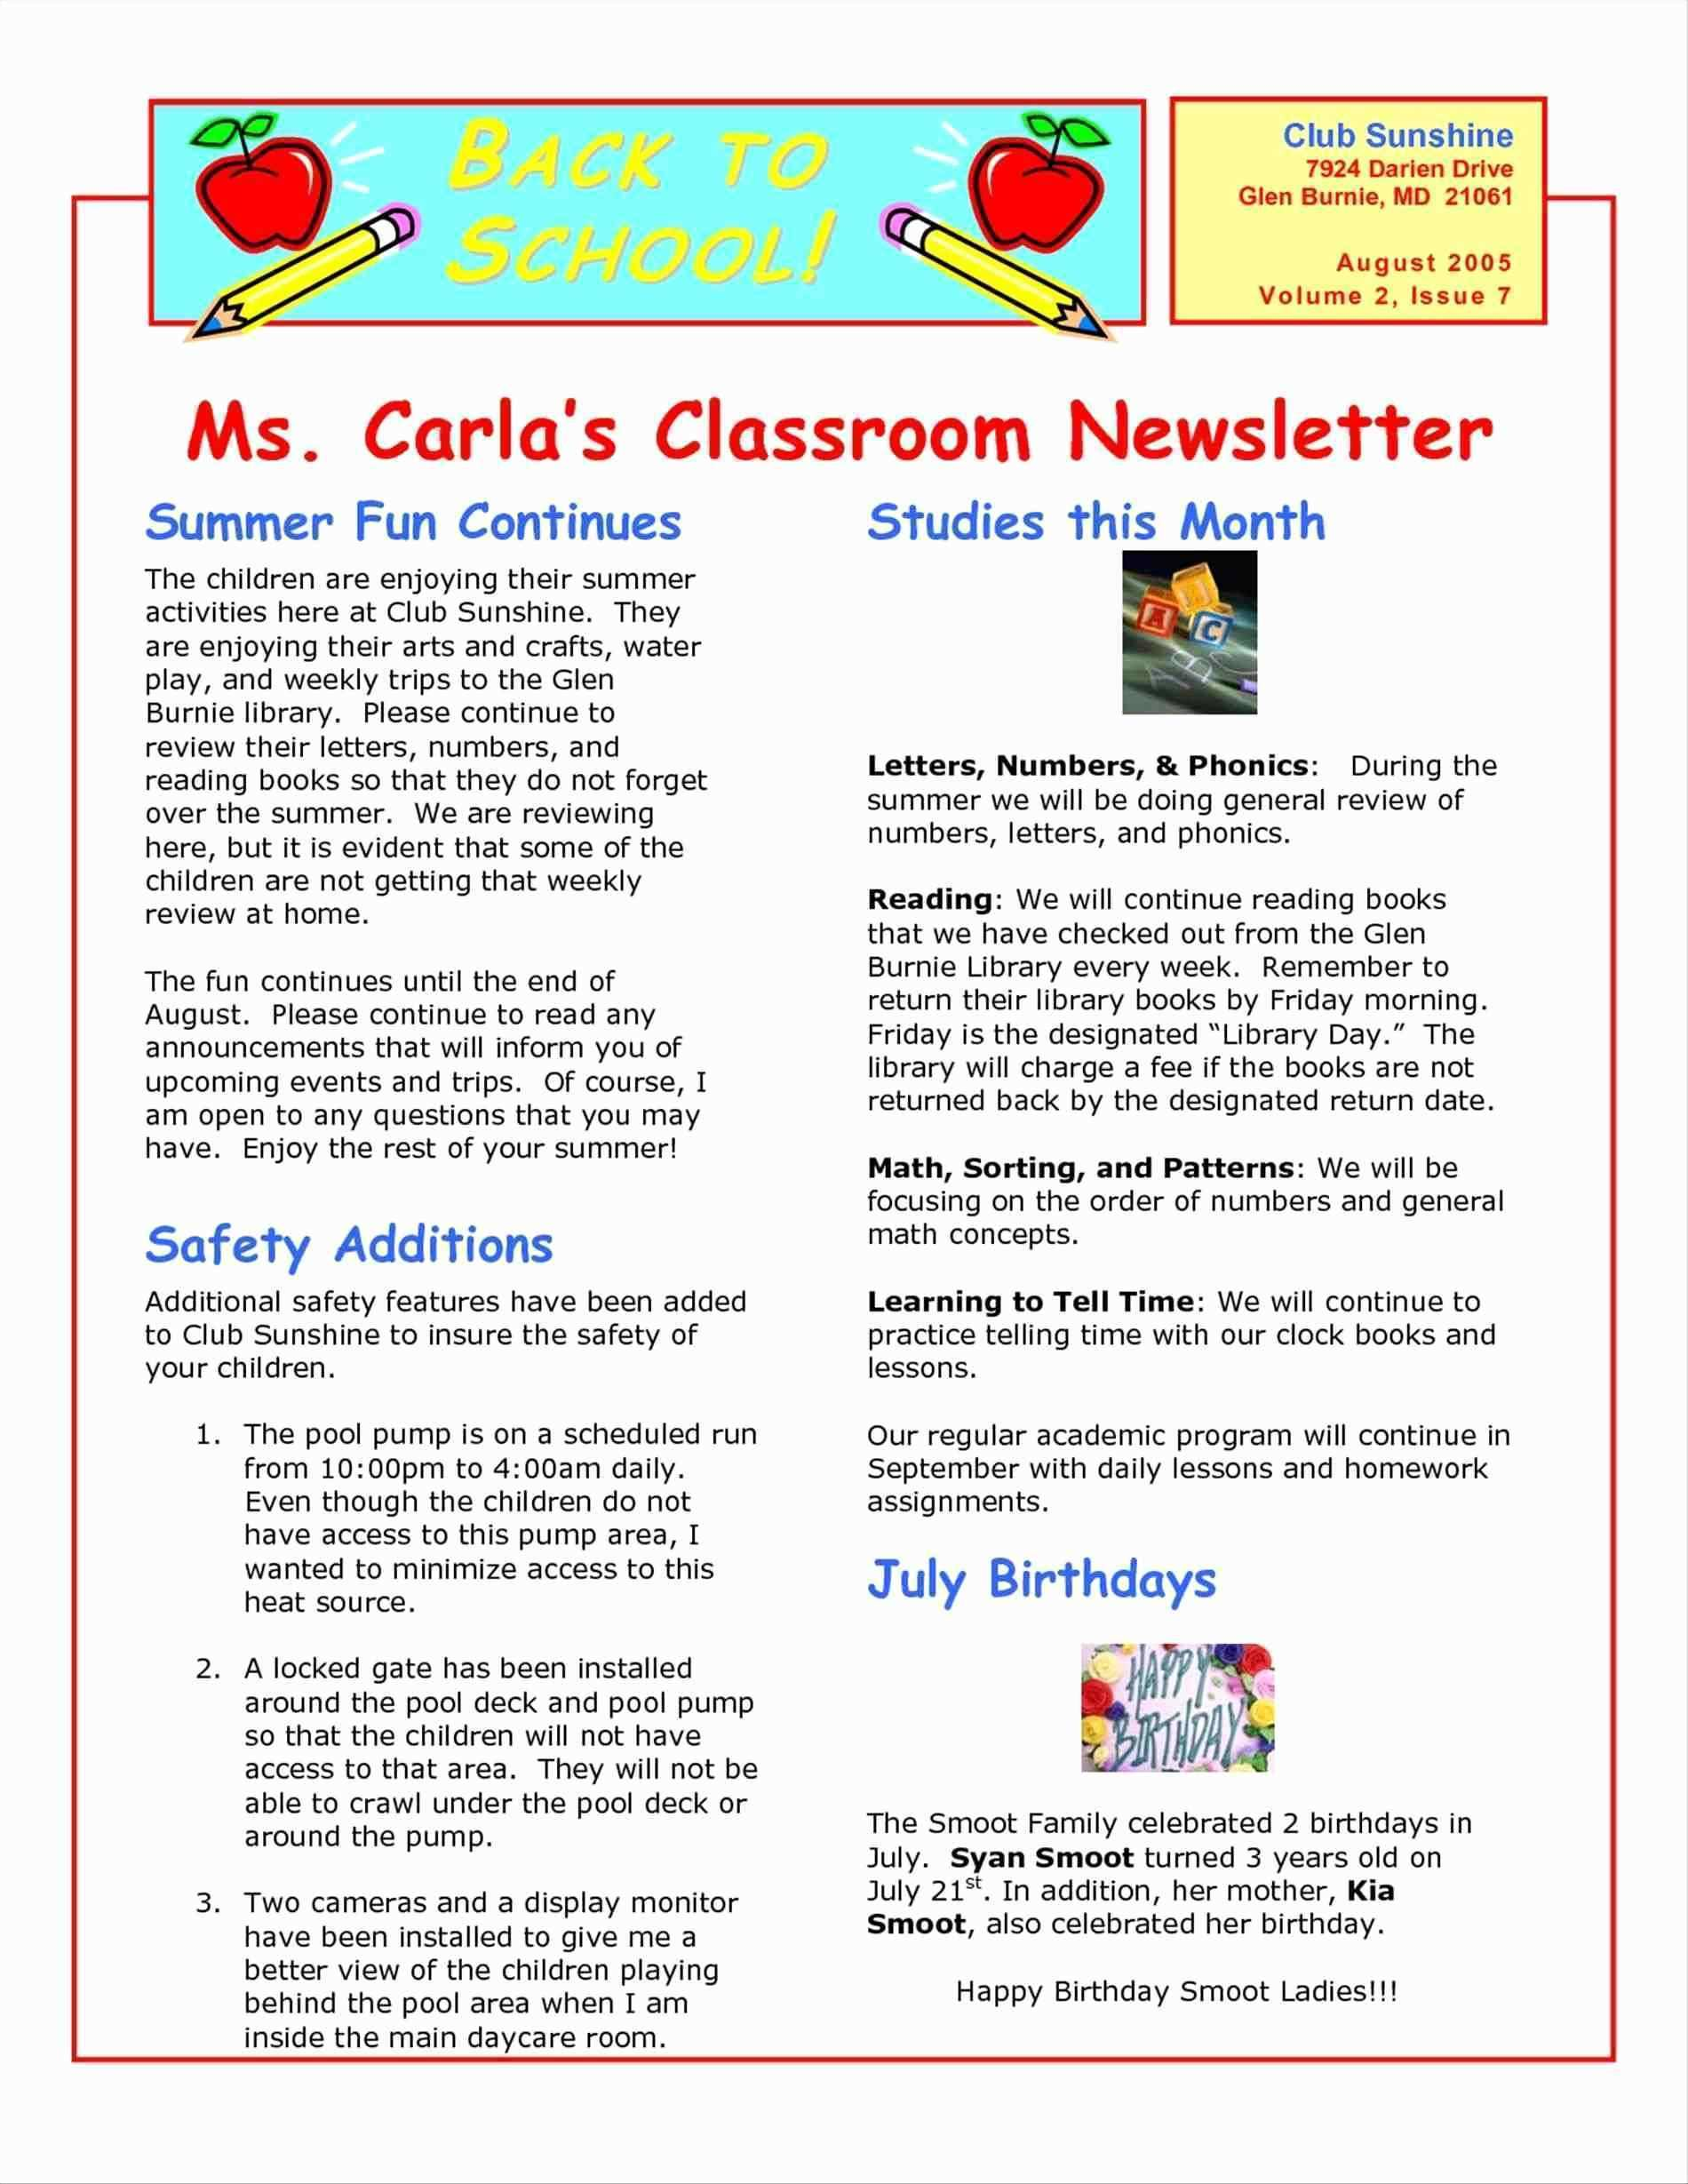 School Newsletter Templates Word